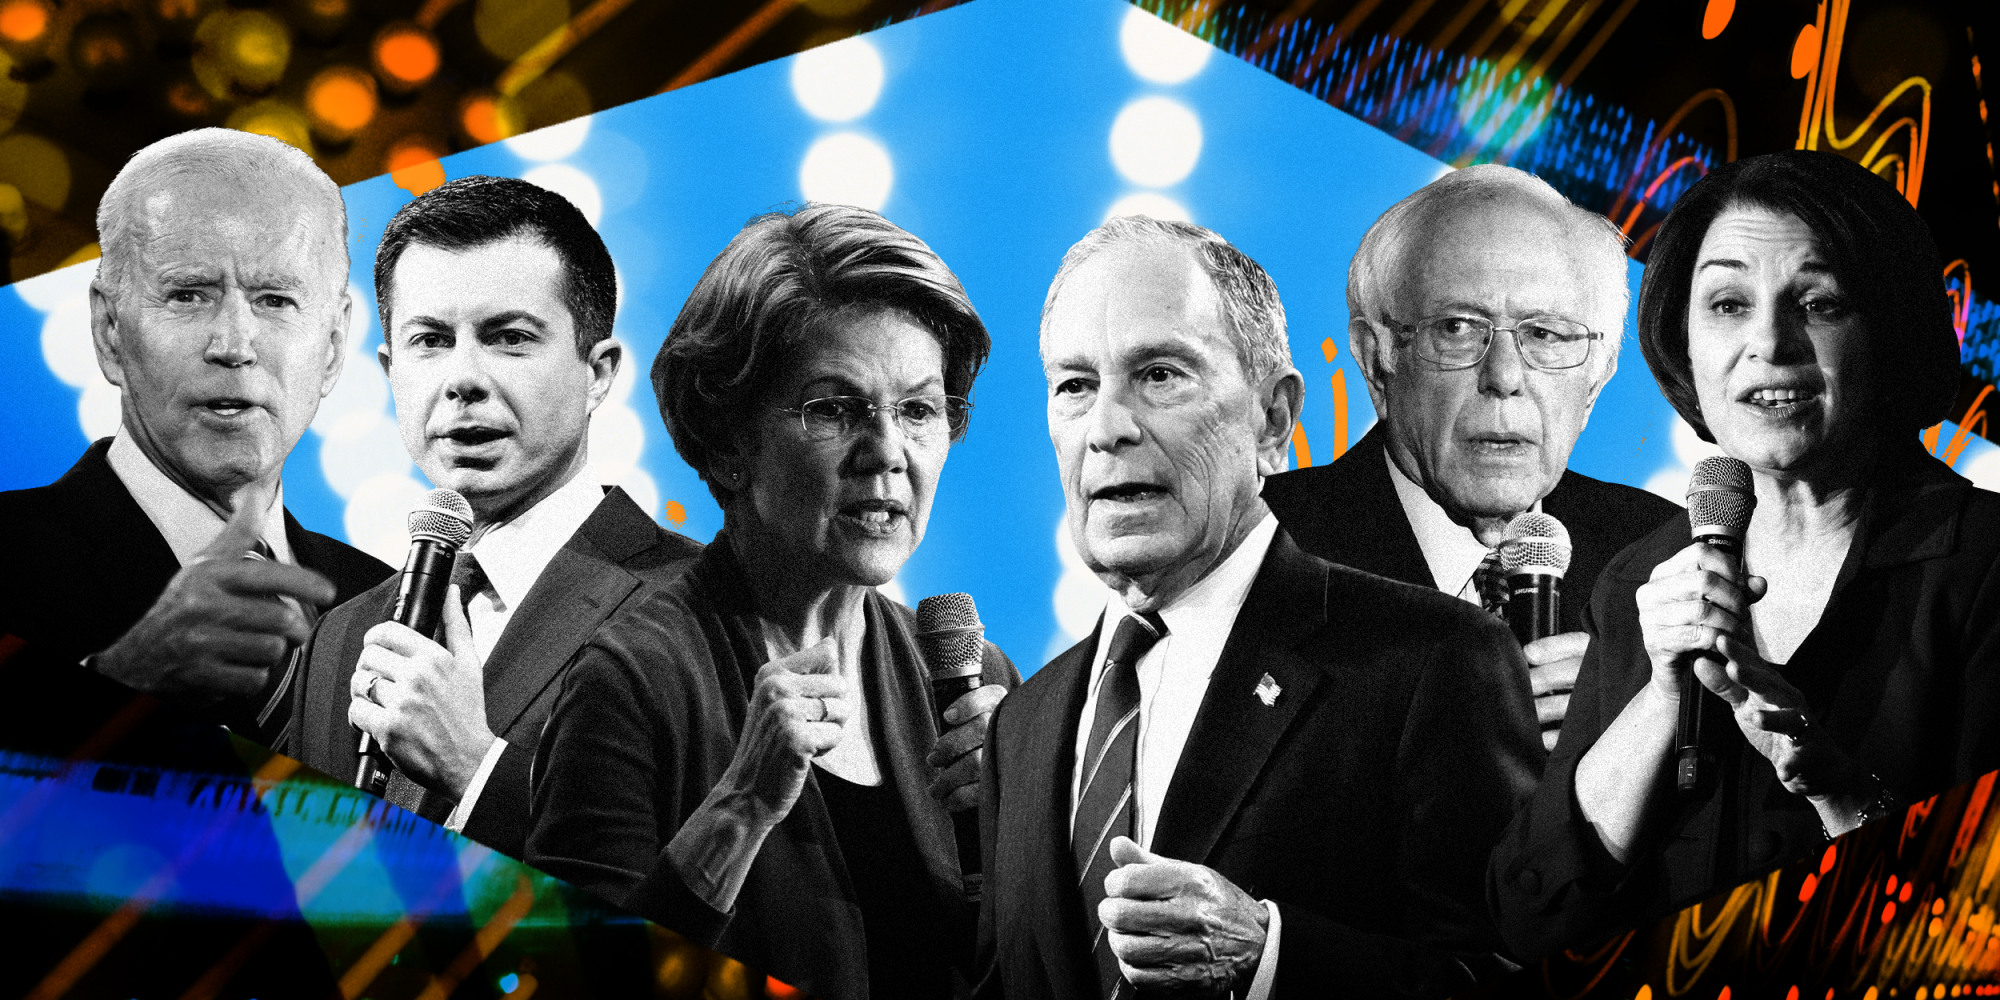 Nevada Democratic debate: Here's how to watch Wednesday's debate for free without cable